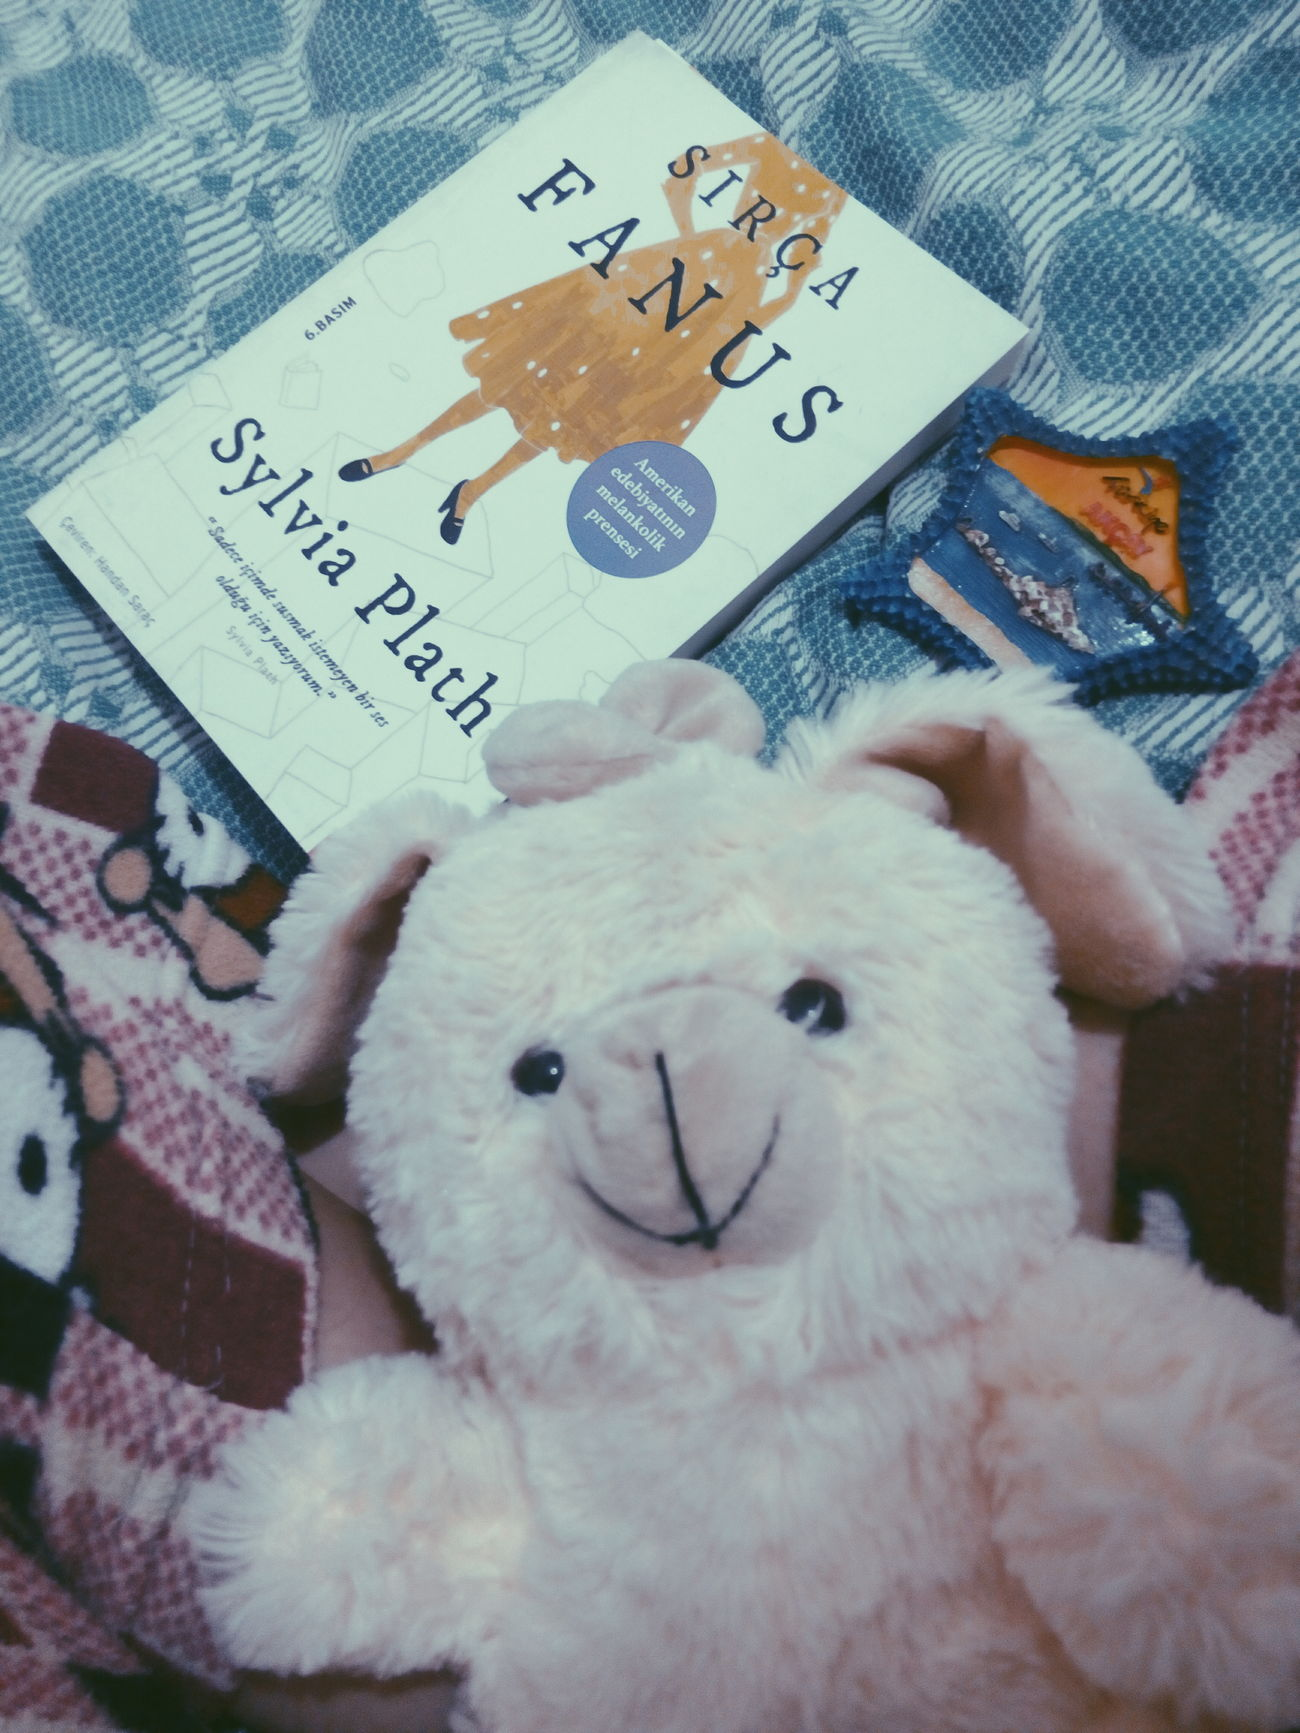 Love ♥ Lovely Star çobanyıldızım Sırçafanus Sylviaplath Sylvia Plath  Thebelljar The Bell Jar Feminism Yeay Good Times Kitap Book Pijamas Bear Ensevilenler